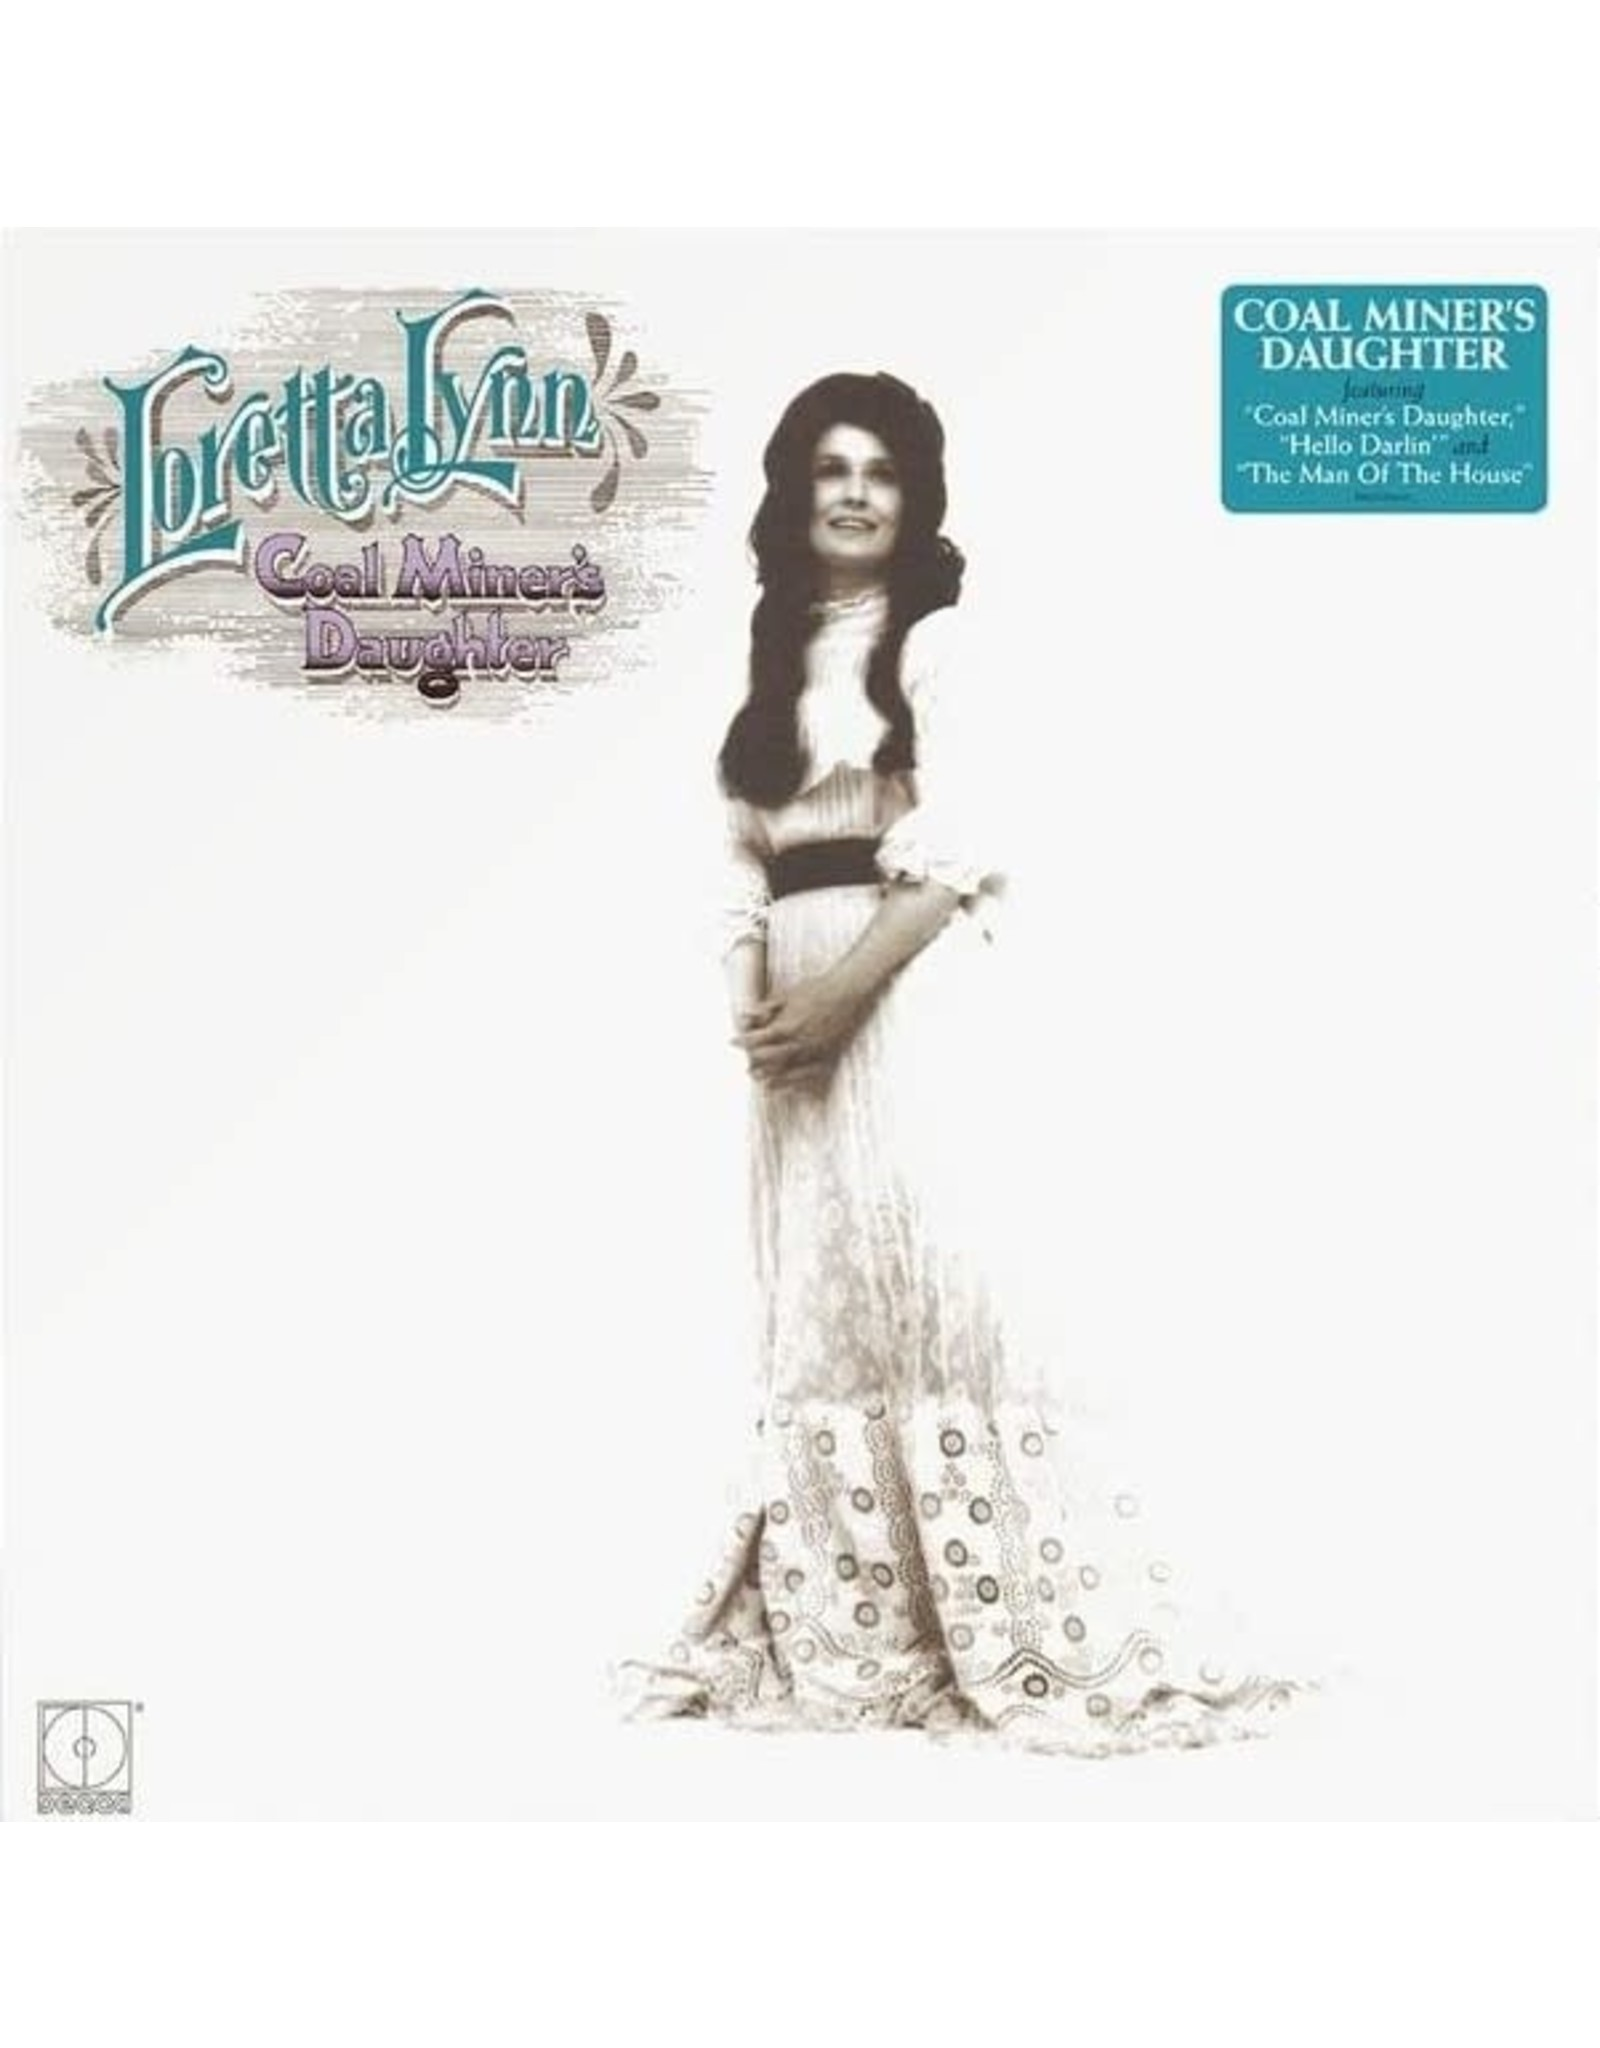 Loretta Lynn - Coal Miner's Daughter (50th Anniversary)